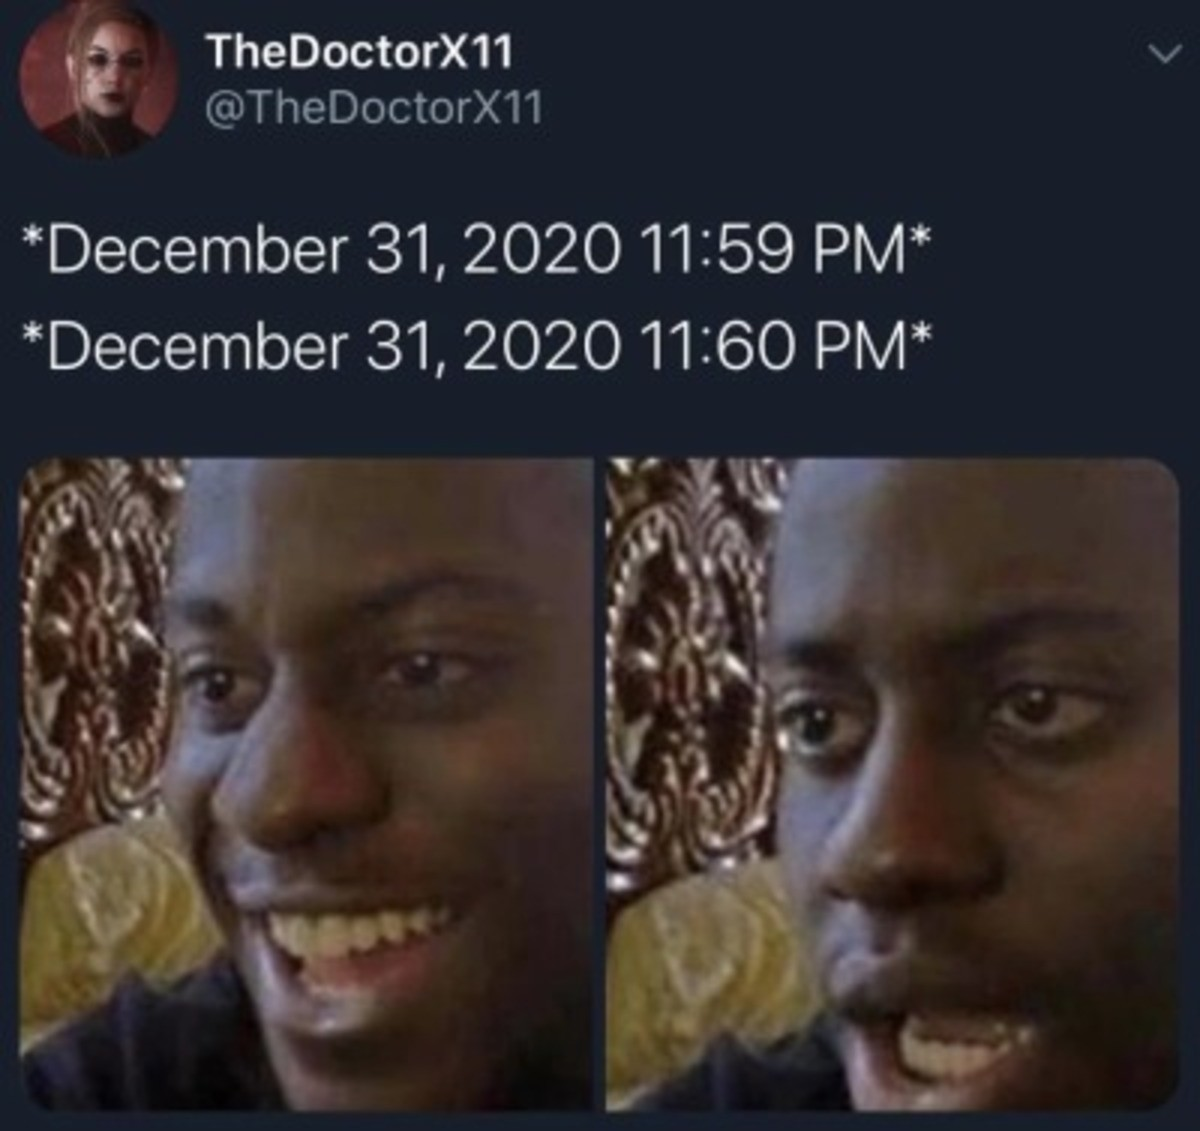 hot exponential paced Cockroach. .. When you're stuck in 2020 forever